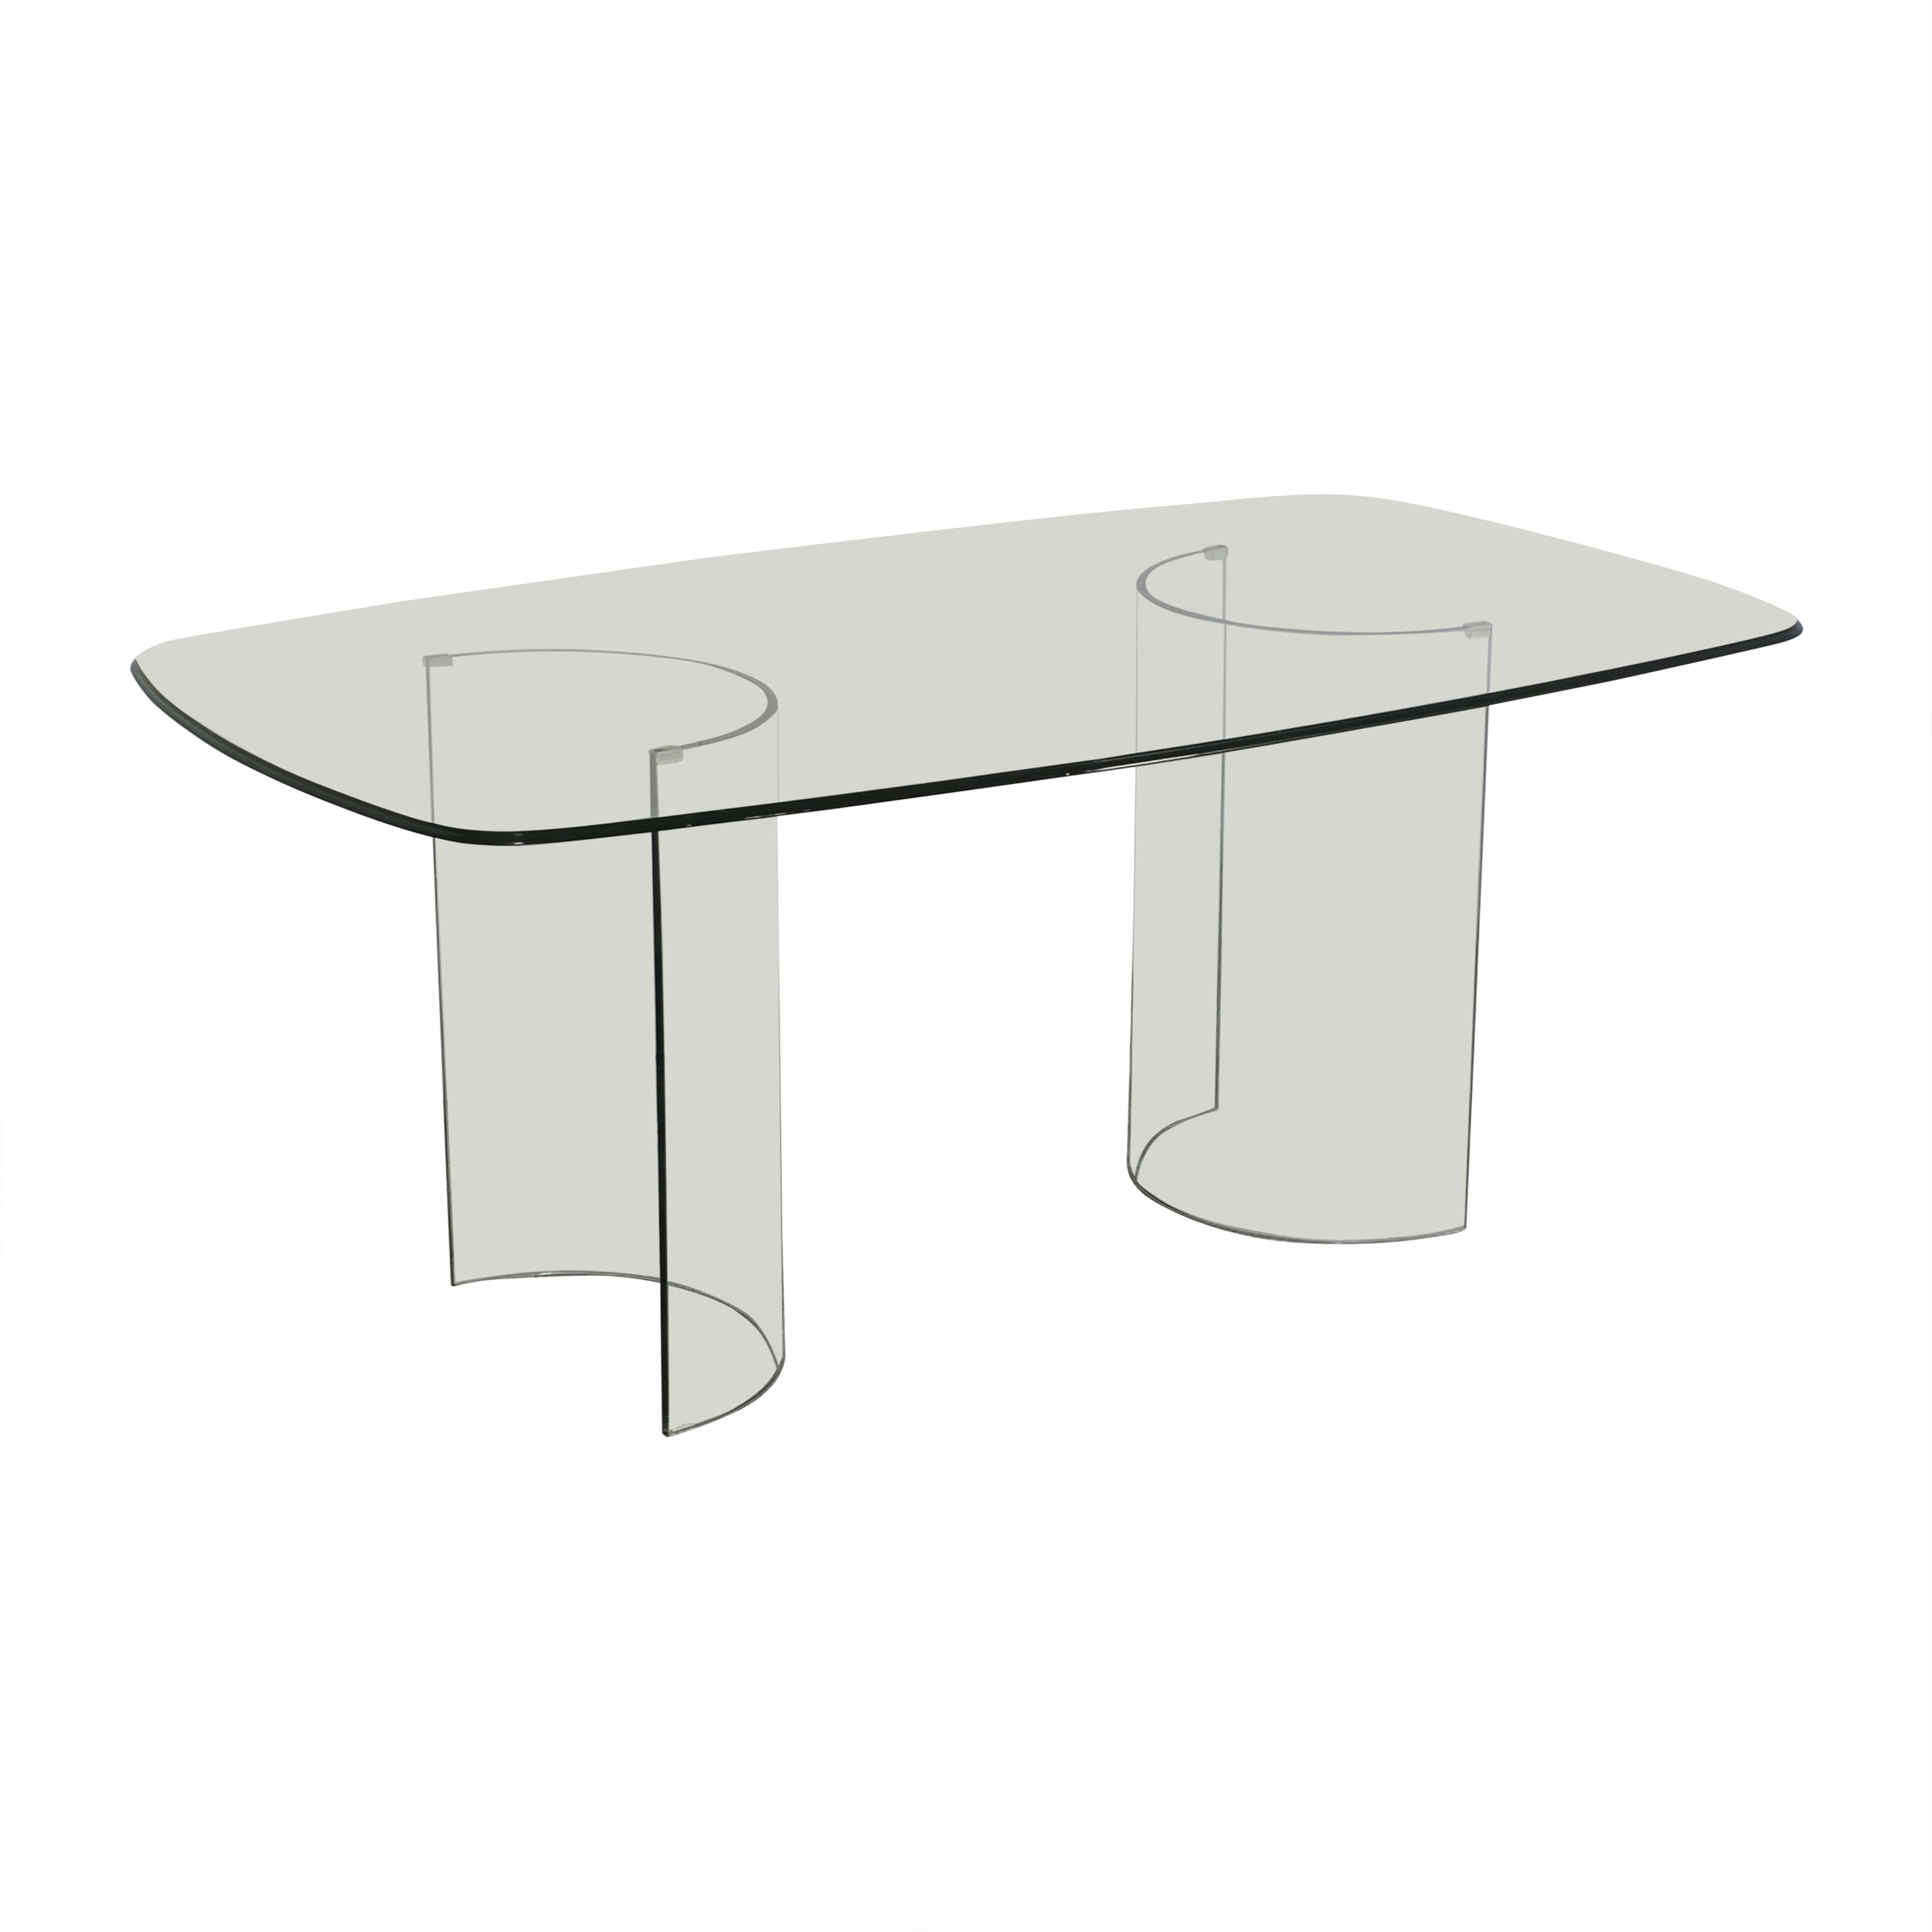 shop Raymour & Flanigan Beveled Tempered Glass Dining Table Raymour & Flanigan Dinner Tables